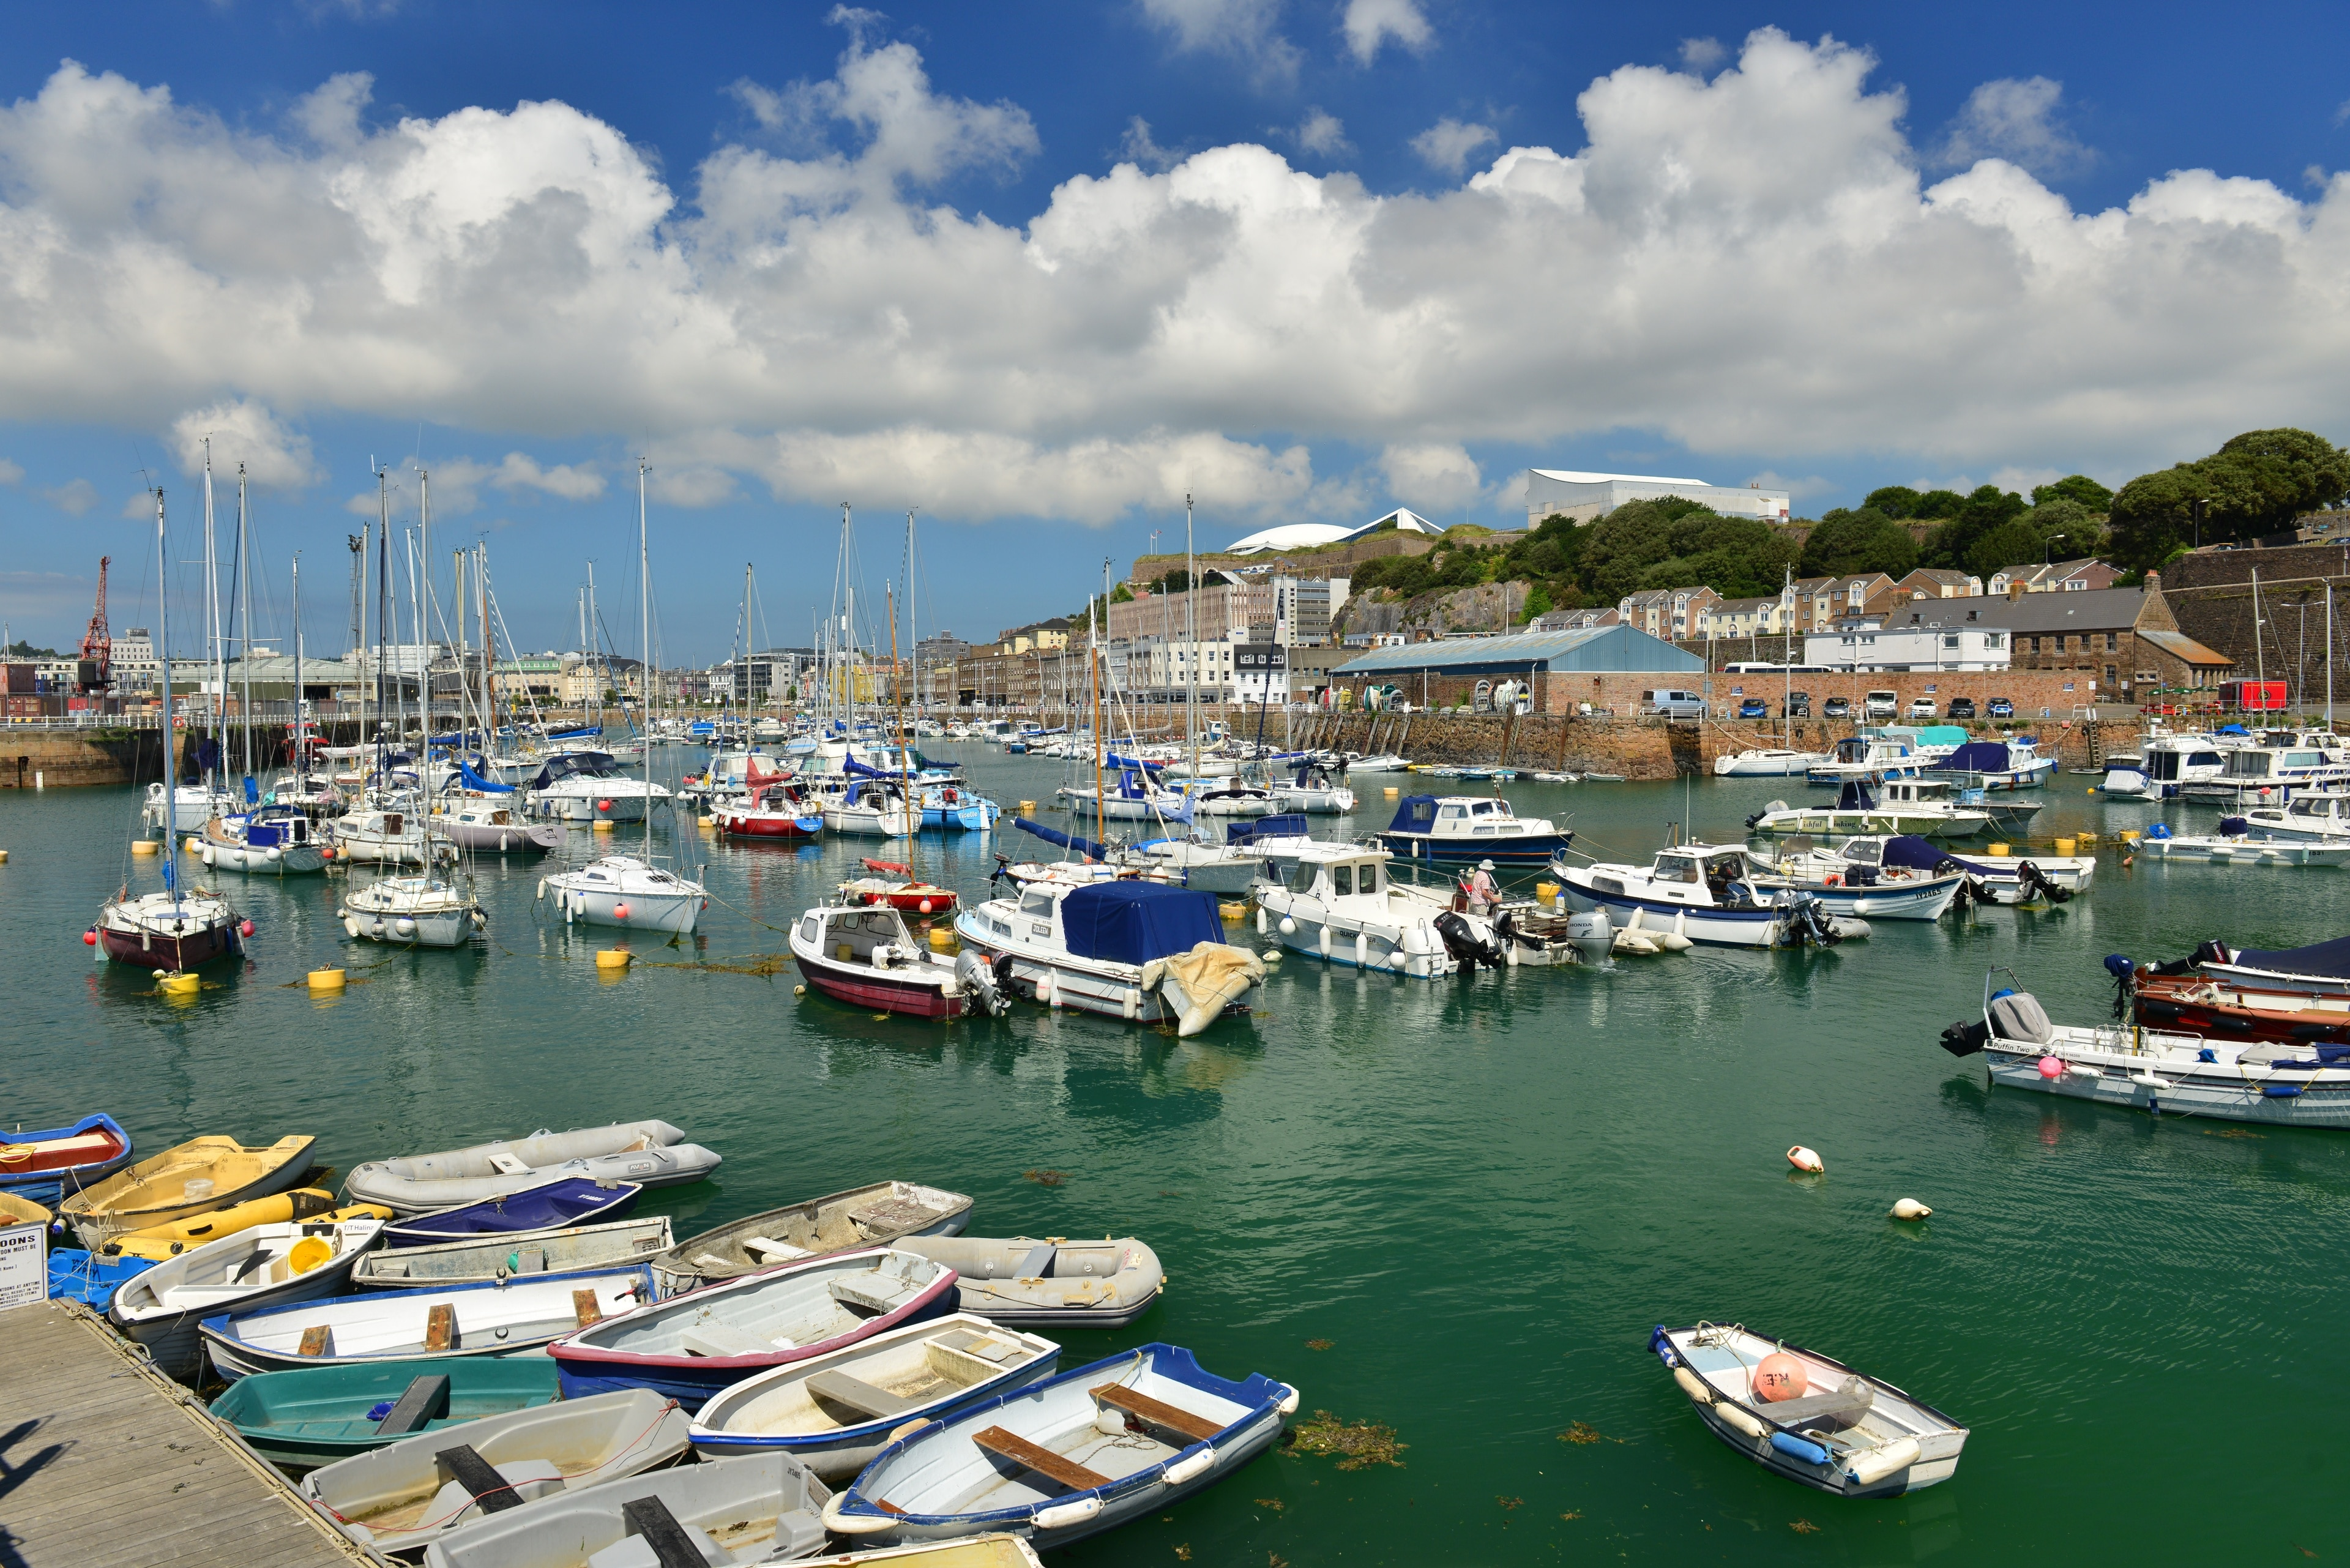 Explore the waterfront in St. Helier with a trip to Port of Jersey. Visit the area's spas or amble around its beautiful beaches.